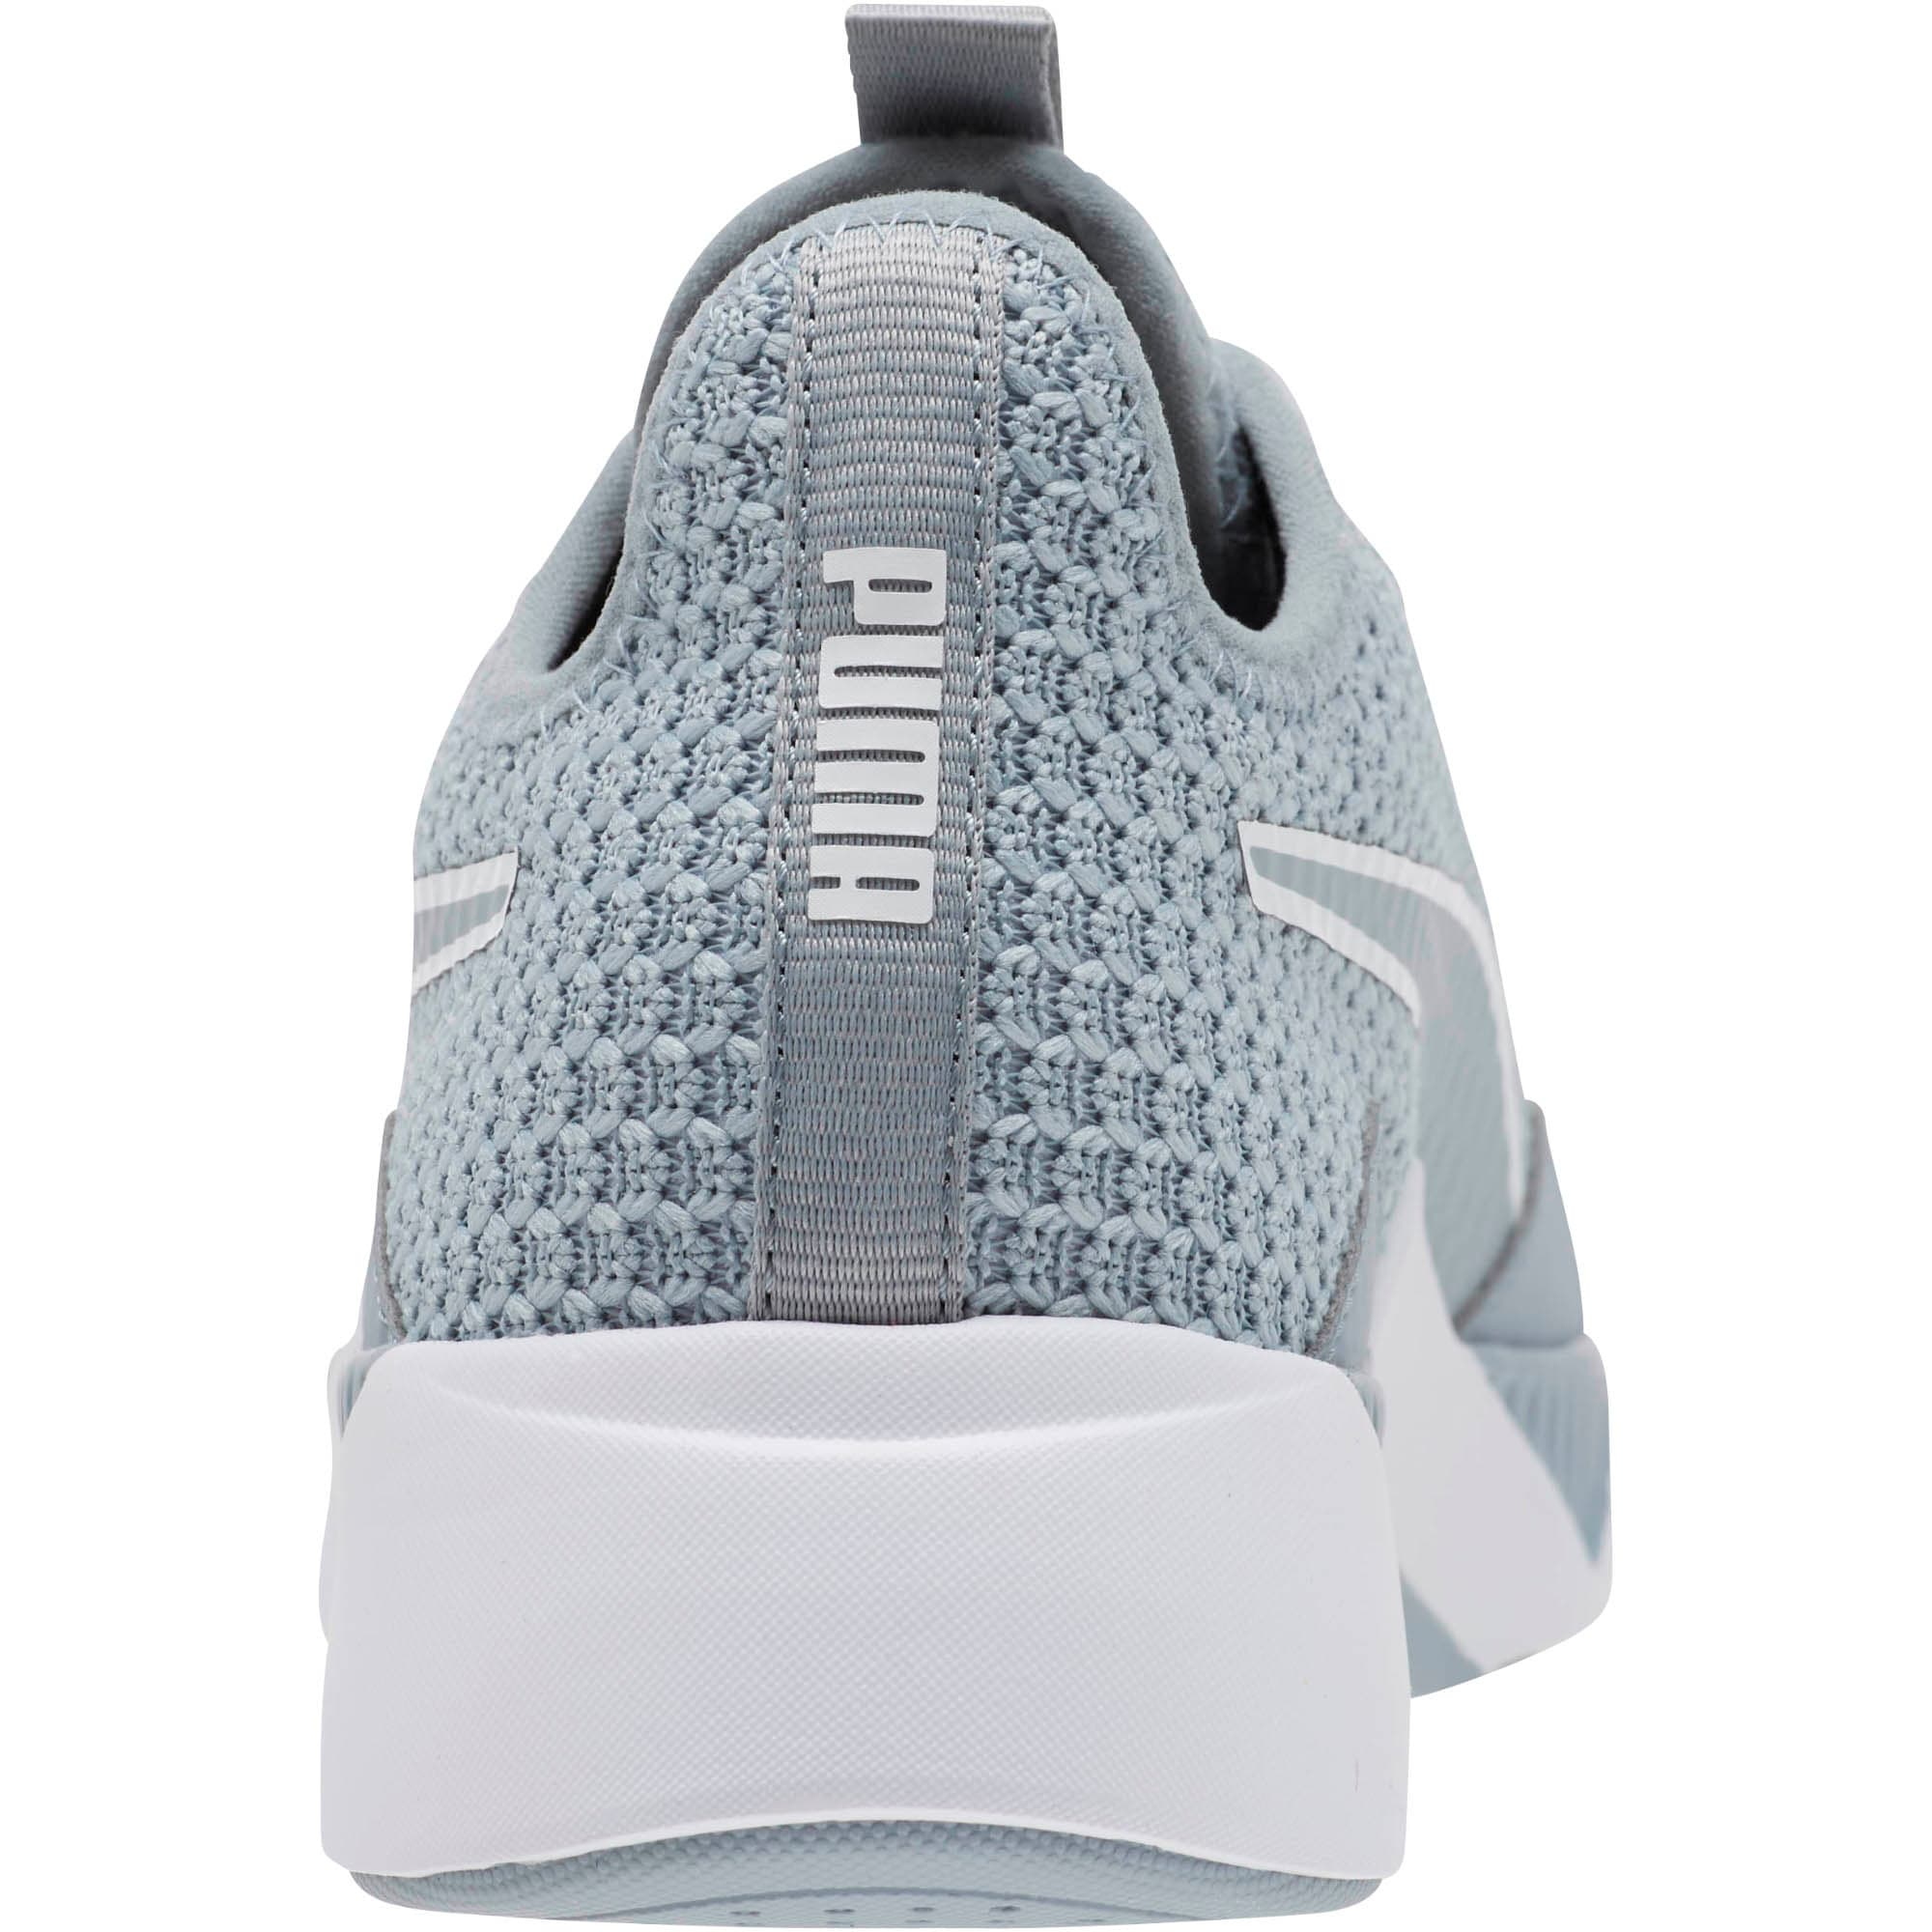 Thumbnail 4 of Incite FS Women's Training Shoes, Quarry-Puma White, medium